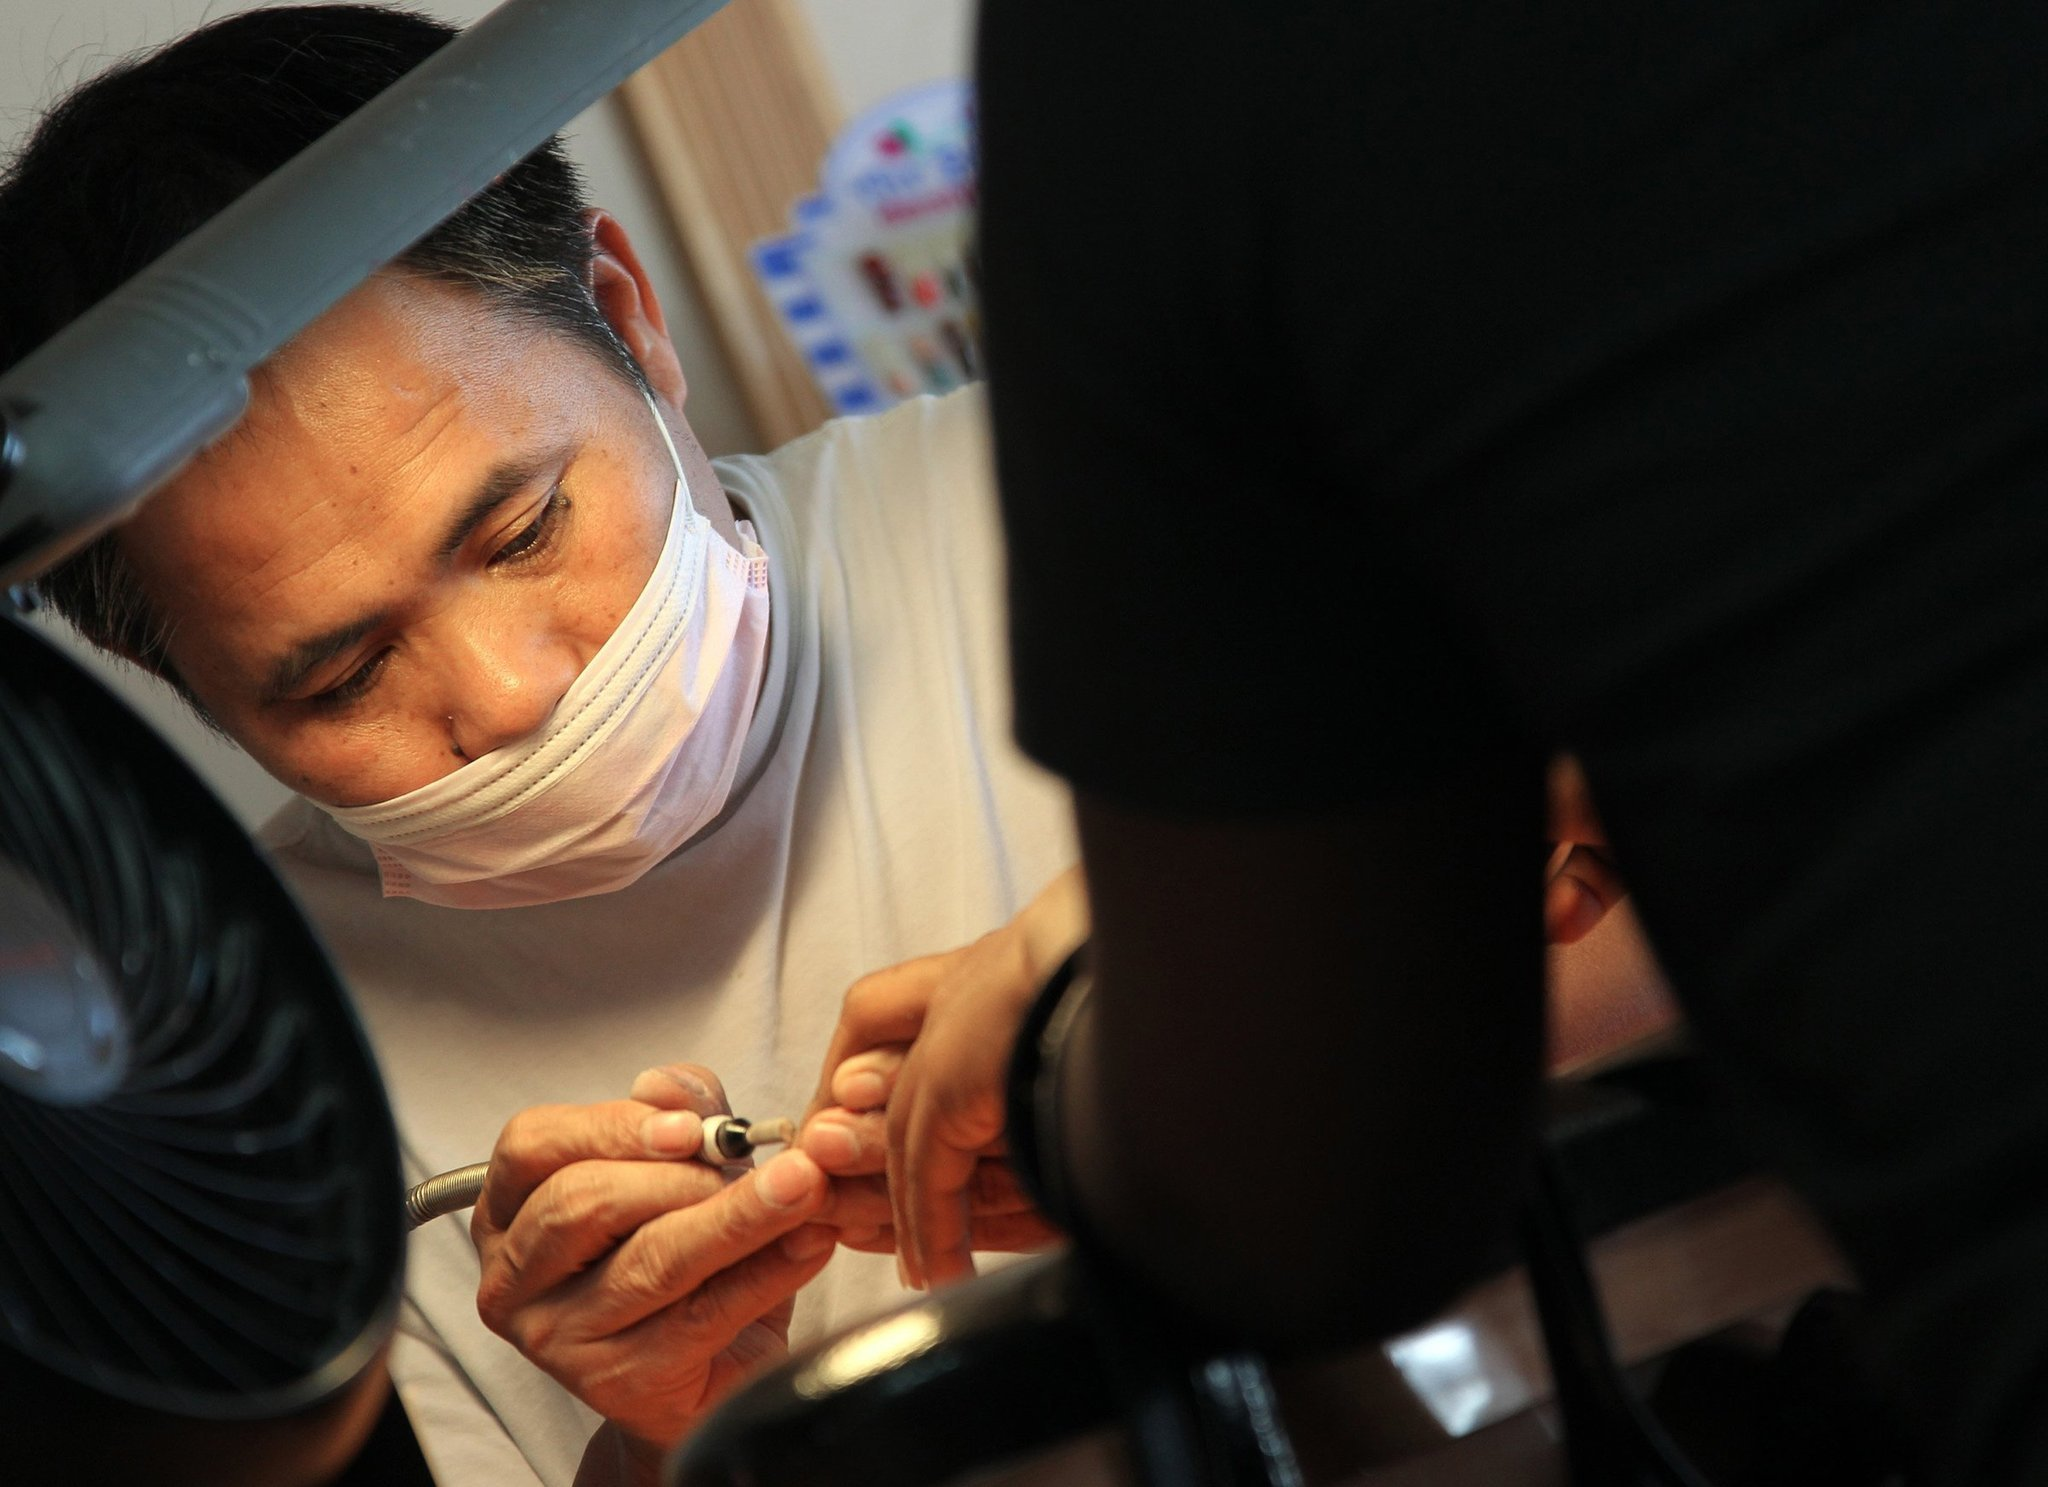 Report finds NYC nail salon workers underpaid, exploited - Chicago ...